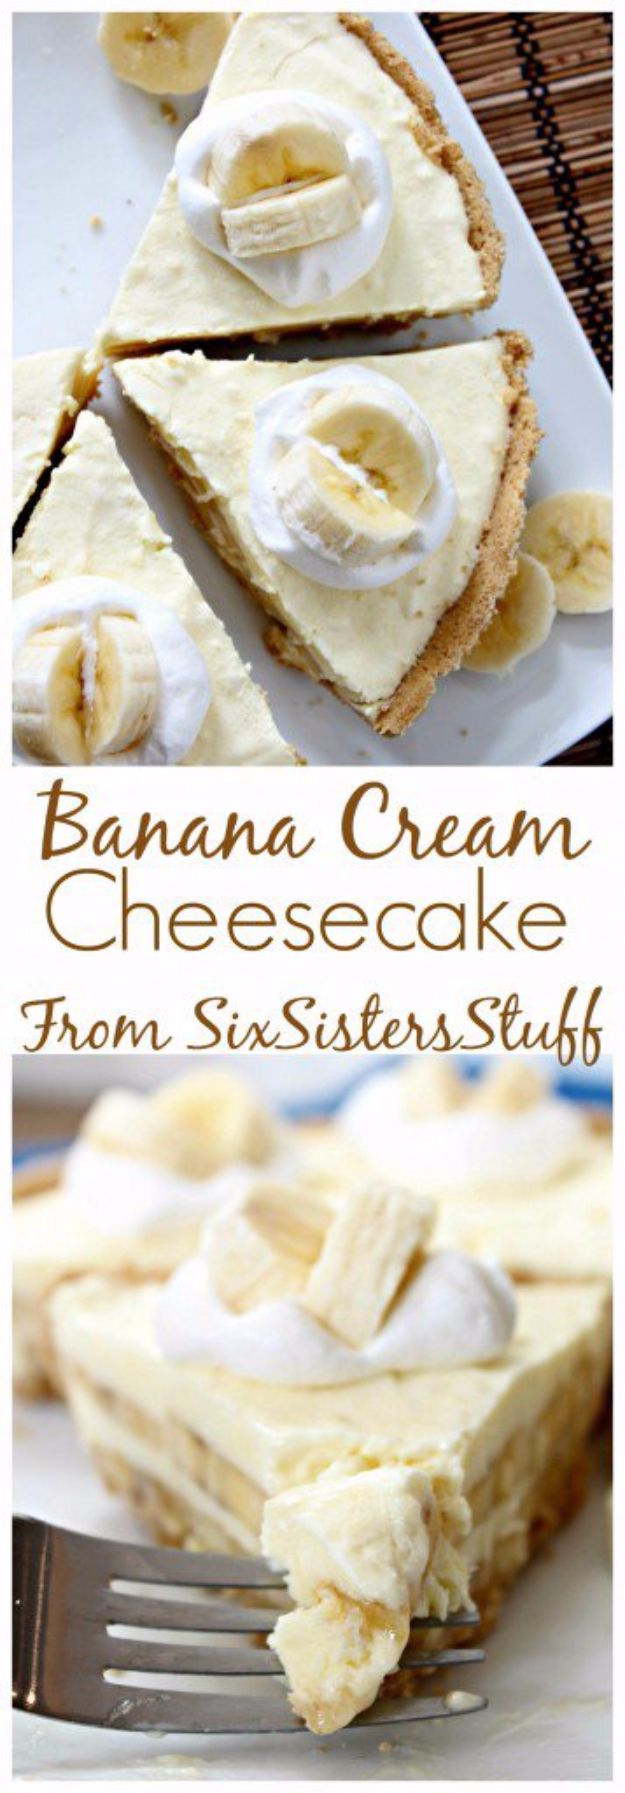 Best Cheesecake Recipes - Banana Cream Cheesecake - Easy and Quick Recipe Ideas for Cheesecakes and Desserts - Chocolate, Simple Plain Classic, New York, Mini, Oreo, Lemon, Raspberry and Quick No Bake - Step by Step Instructions and Tutorials for Yummy Dessert